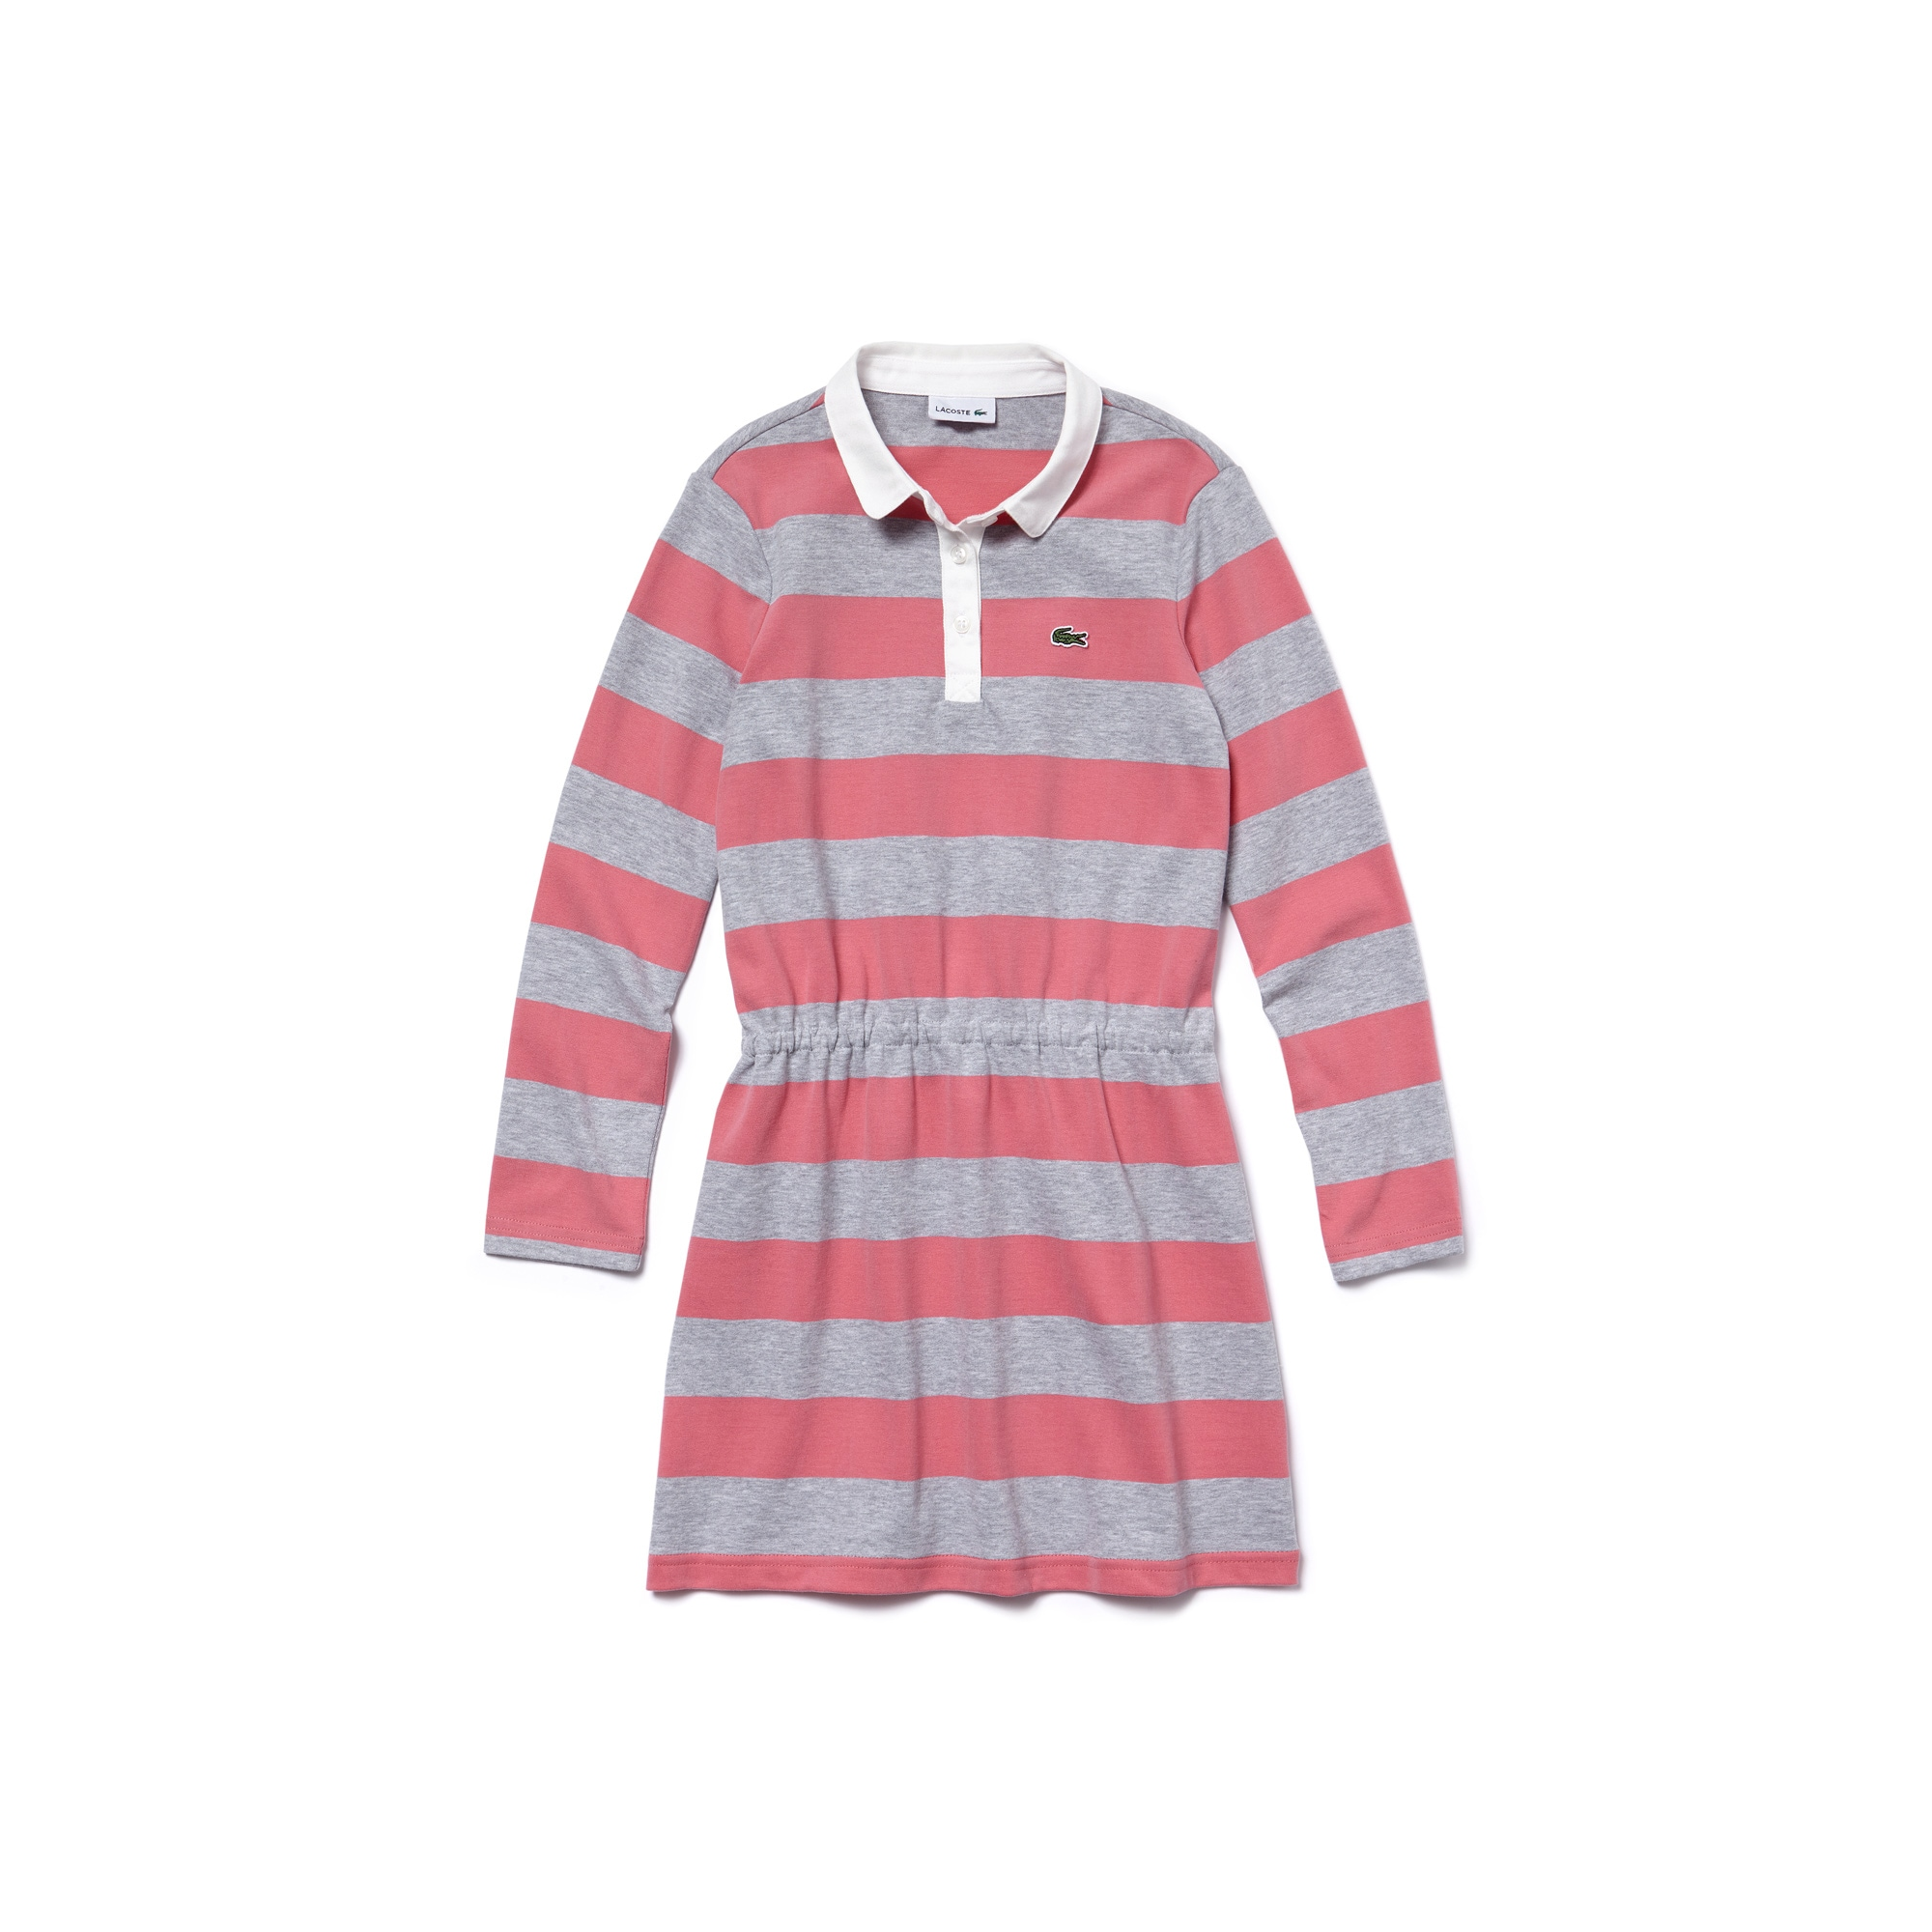 Girls' Bicolor Striped Jersey Fitted Polo Dress